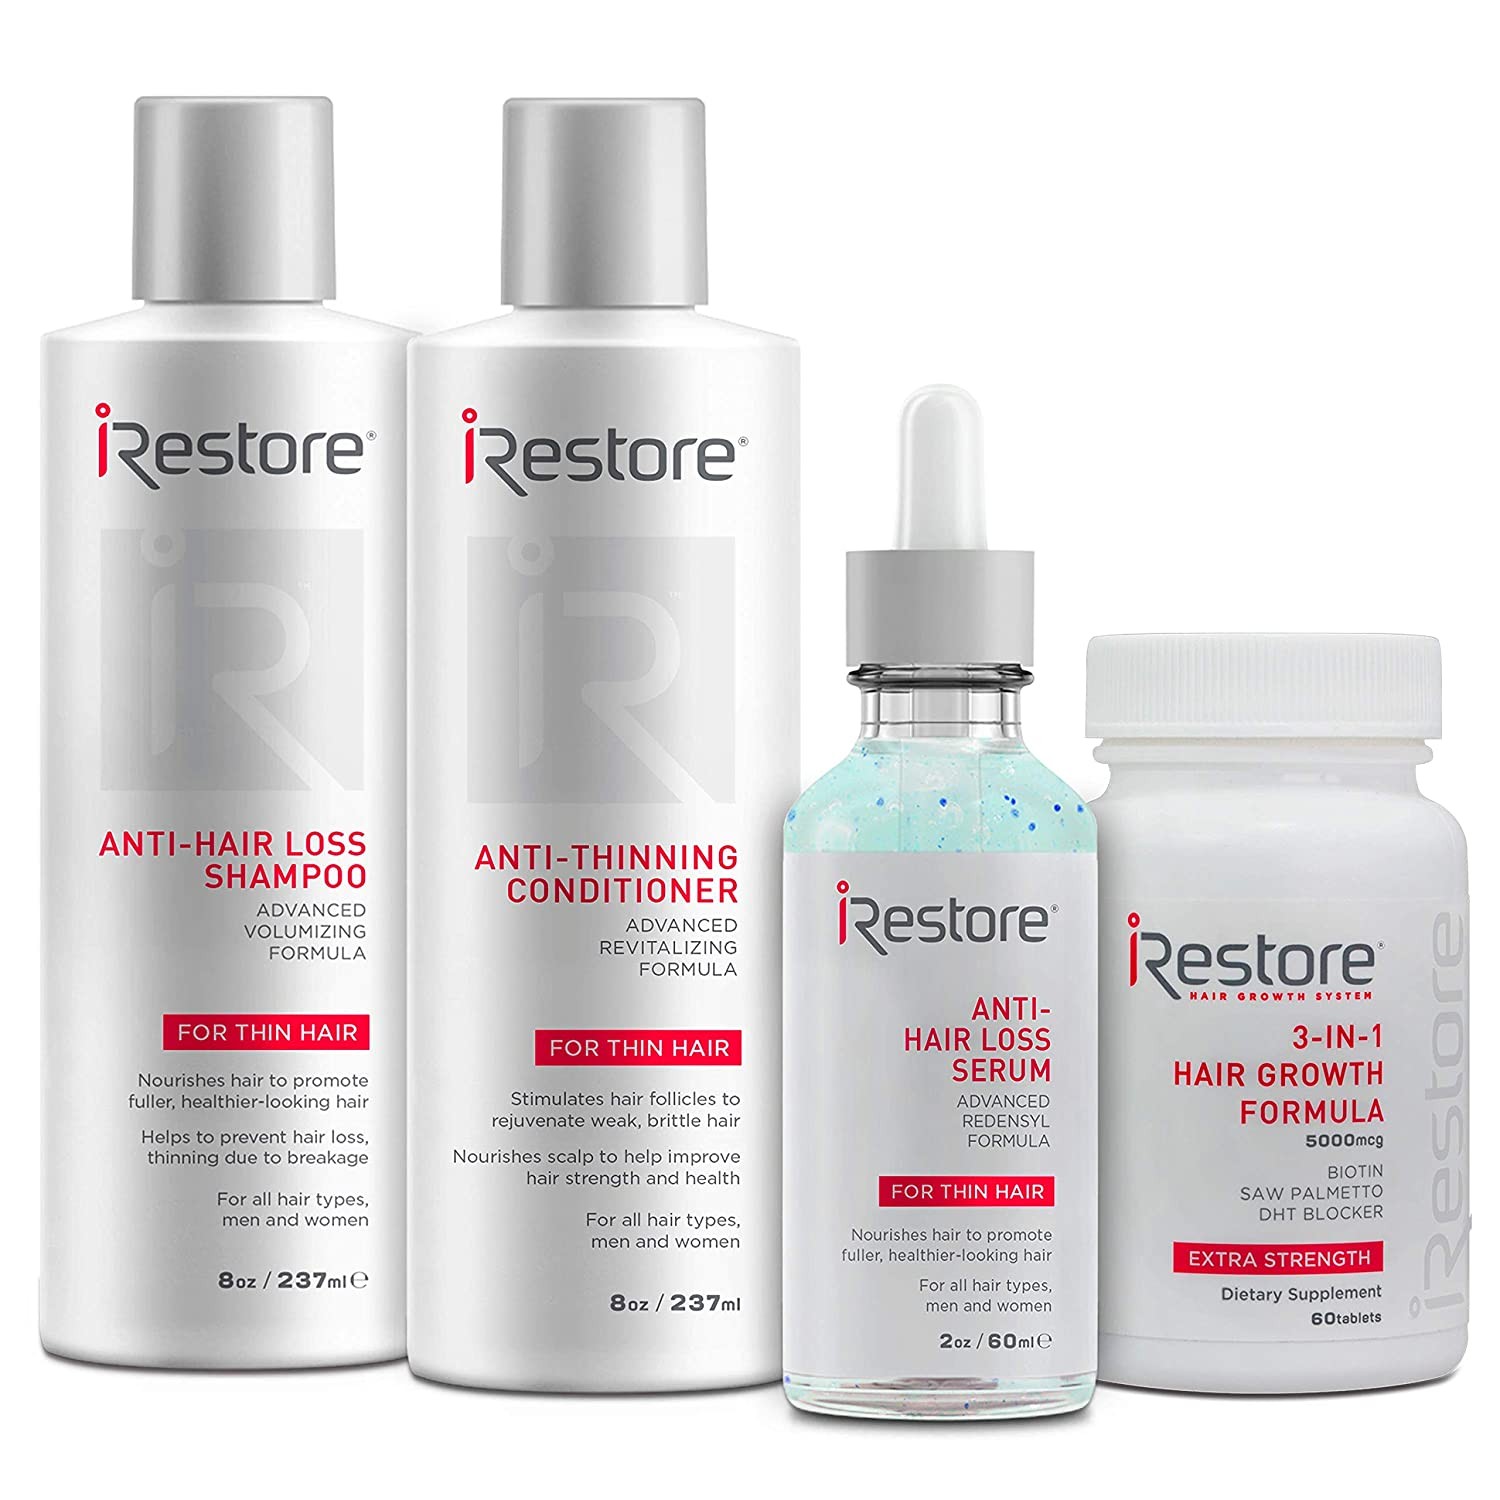 iRestore Max Growth Bundle includes the 3-in-1 Hair Growth Supplement, Anti-Hair Loss Serum, Anti-Hair Loss Shampoo and Anti-Thinning Conditioner to combat hair loss